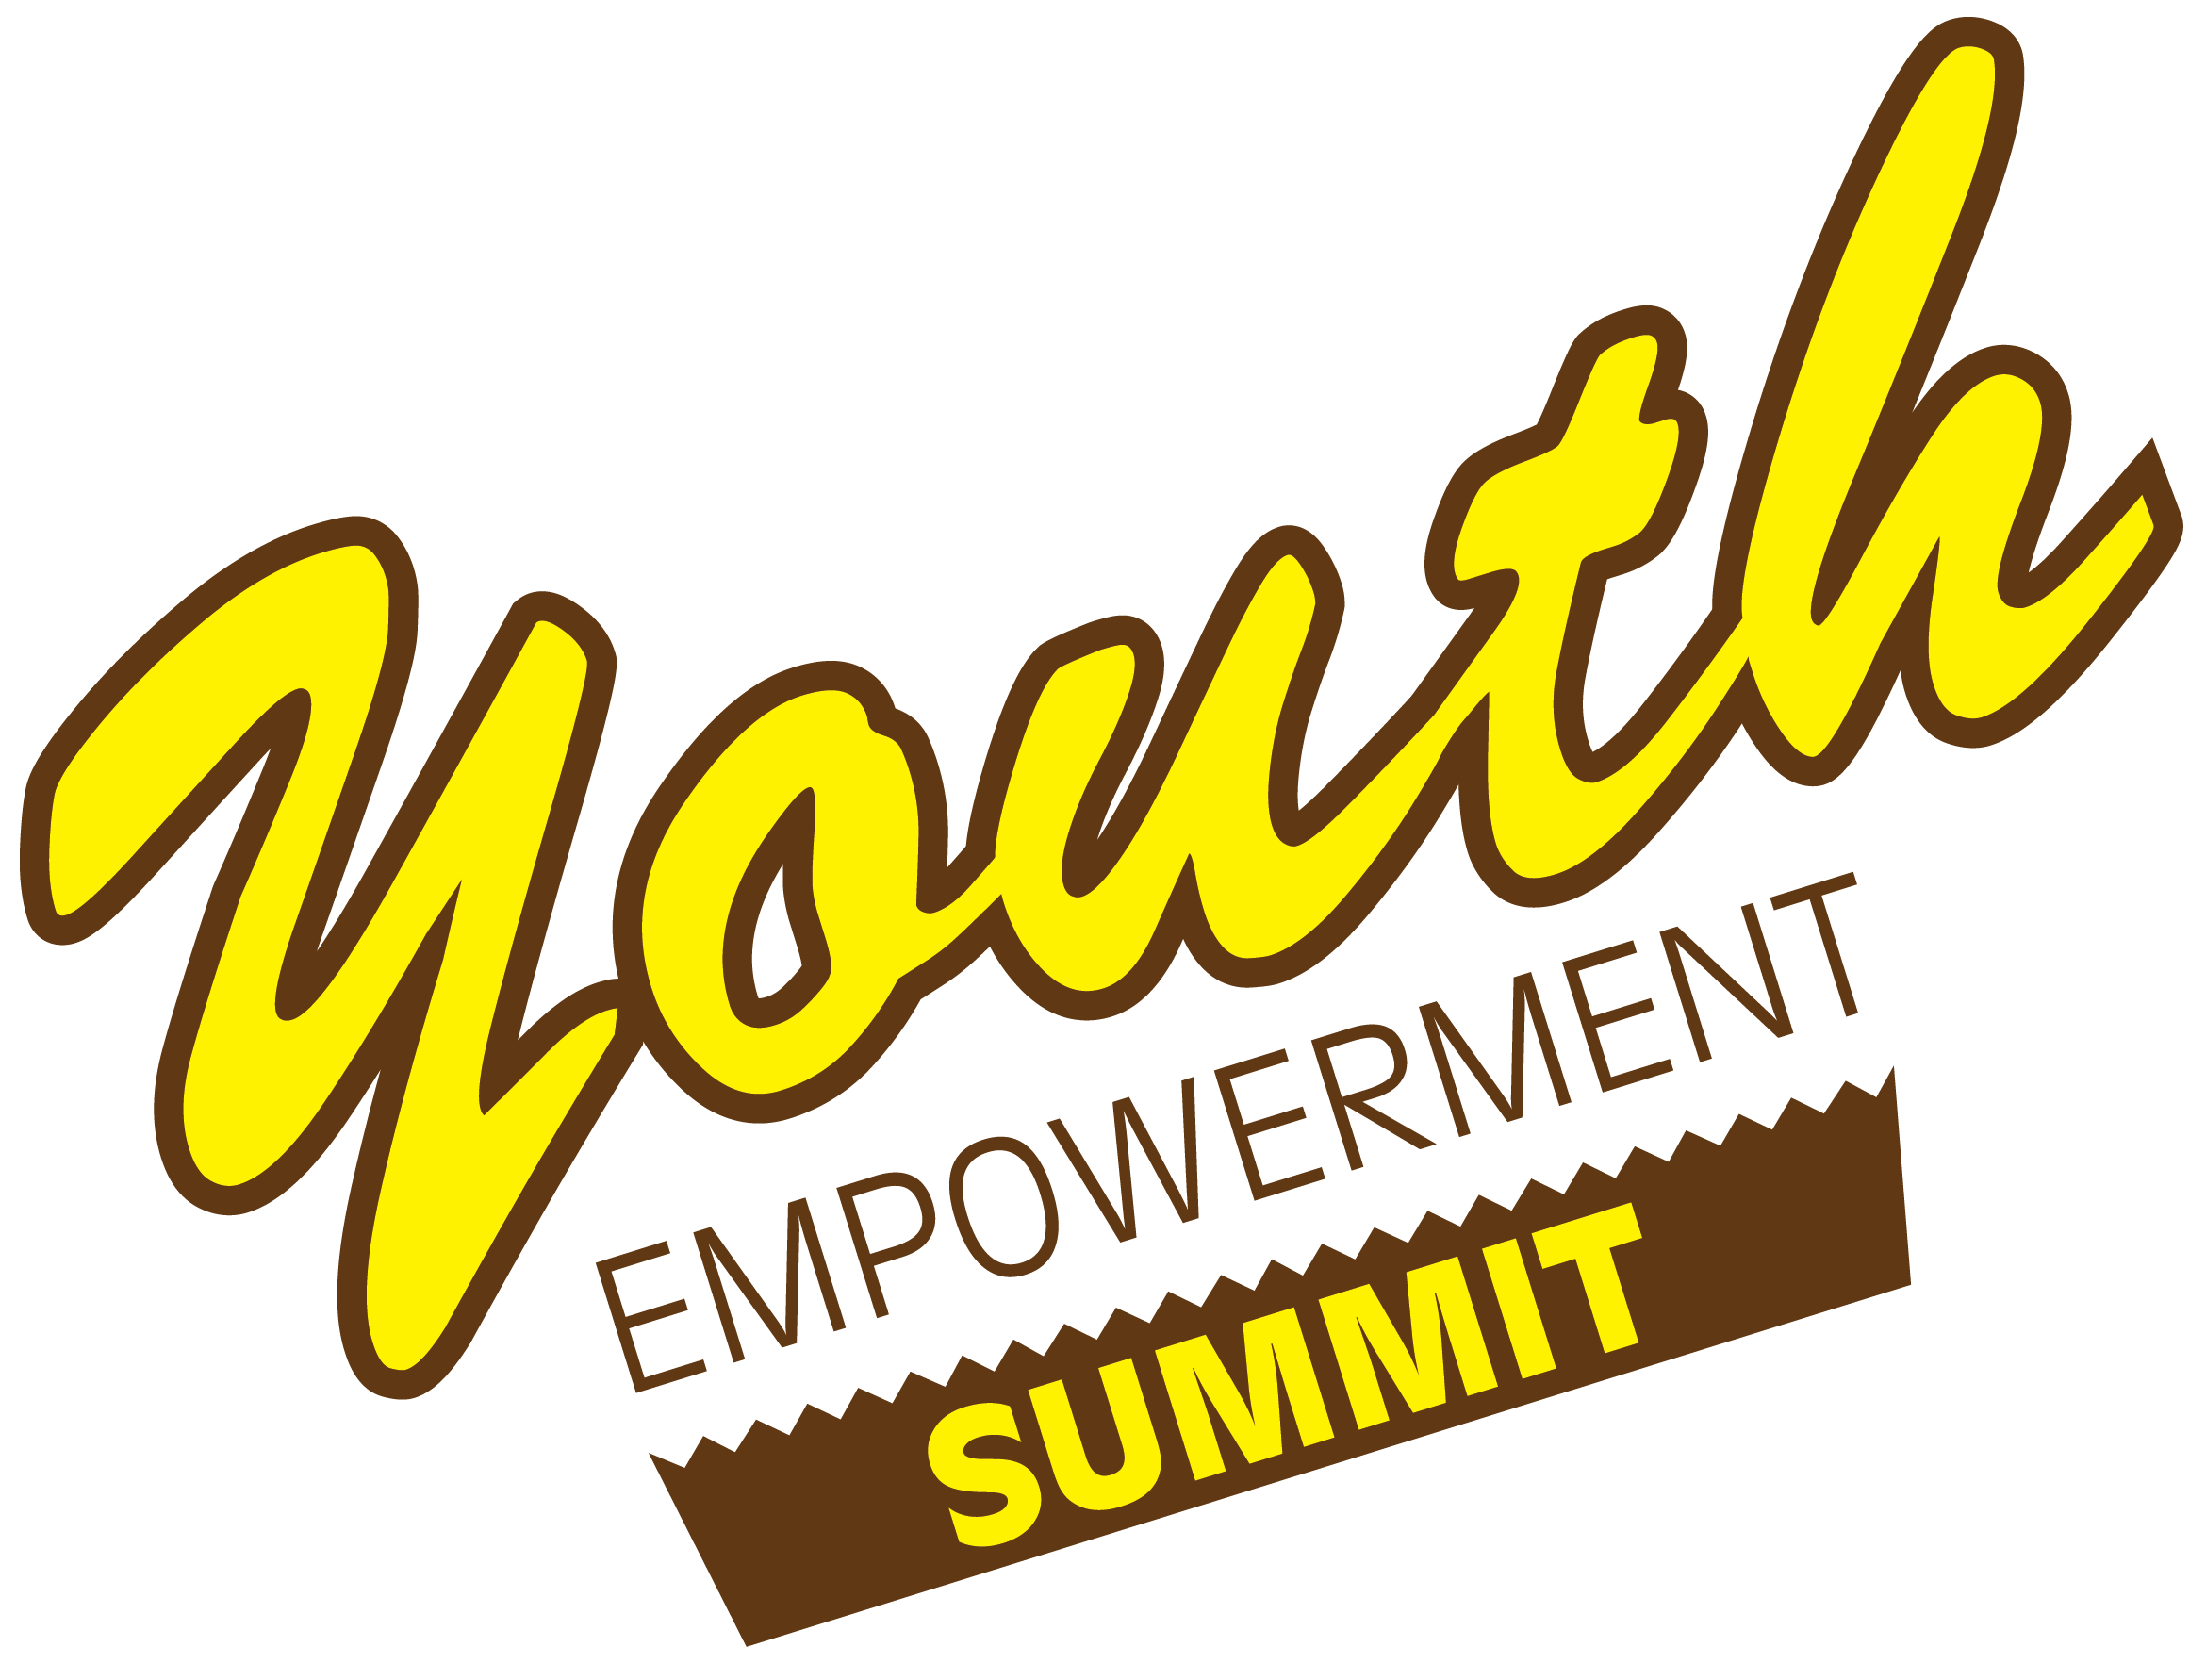 youth empowerment summit - yes